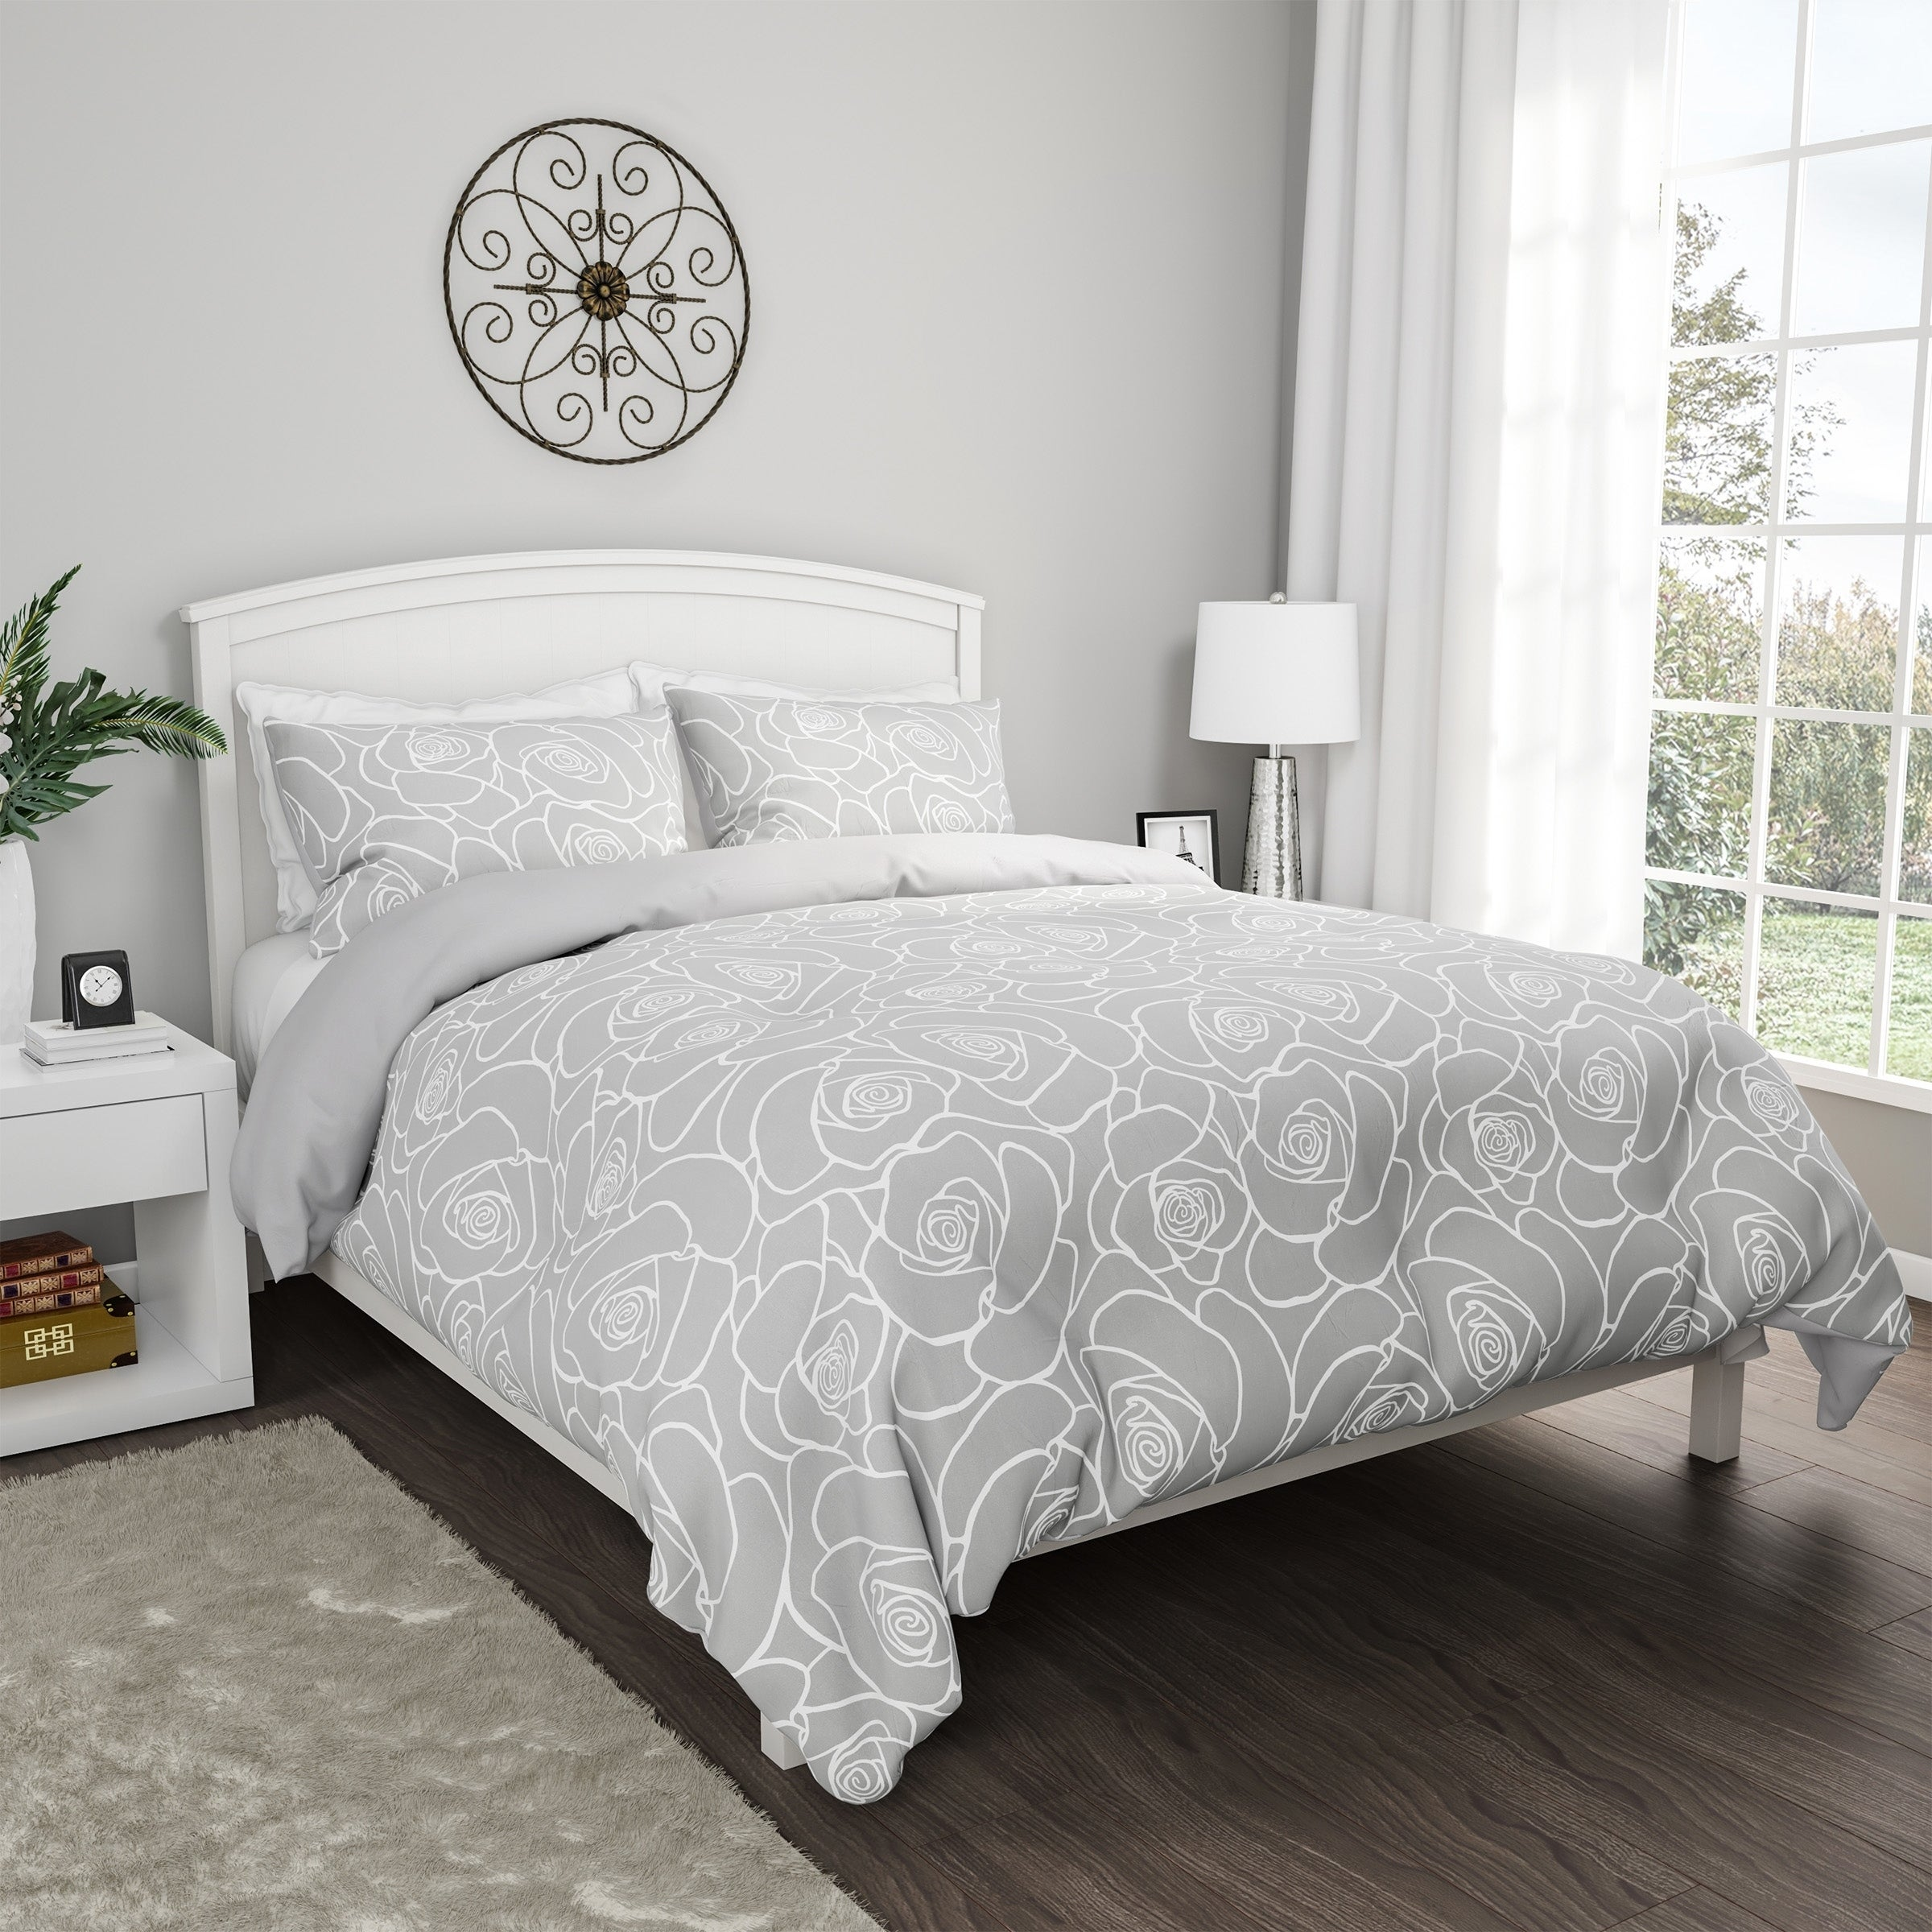 3 Piece Comforter Set Hypoallergenic Polyester Microfiber Bed Of Roses Floral Print Down Blanket With Shams By Windsor Home On Sale Overstock 27175662